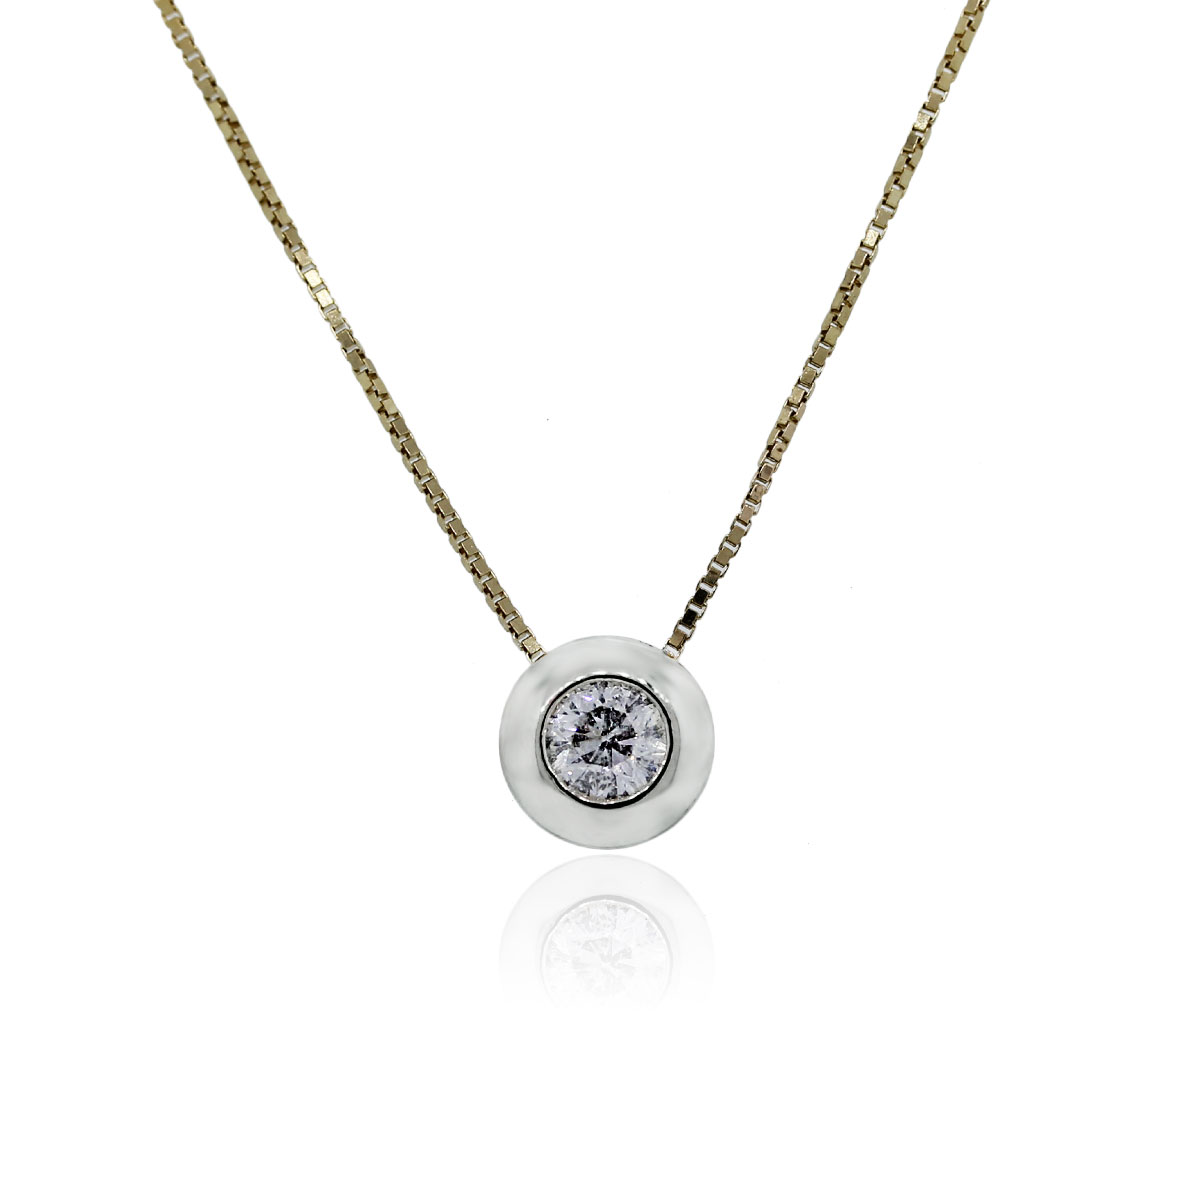 You are viewing this 14k Yellow Gold .50ct Round Brilliant Diamond Bezel Set Pendant Necklace!